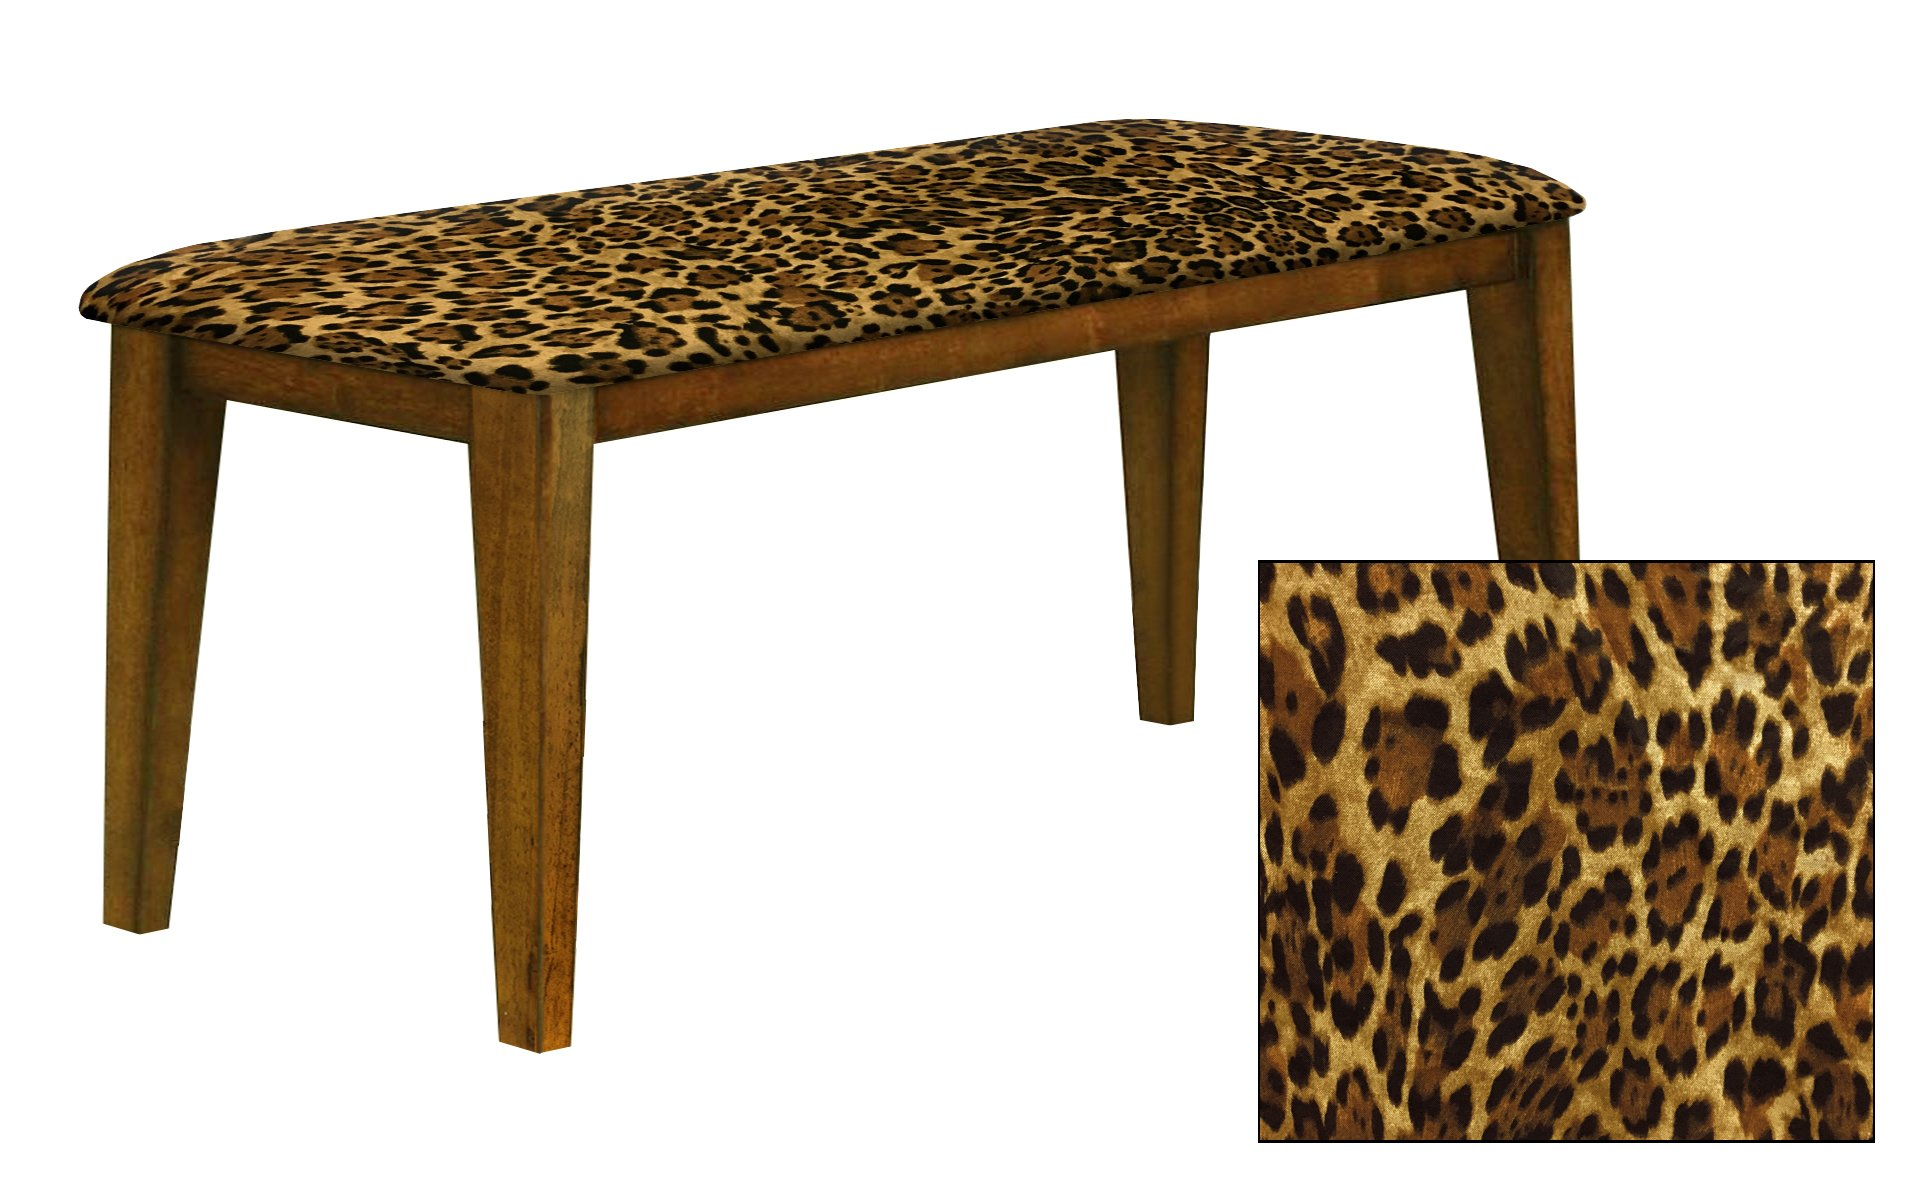 """Oak Finish 19"""" Tall Universal Bench Featuring a Padded Seat Cushion With Your Choice of an Animal Print Fabric Covered Seat Cushion (Leopard Large Cotton)"""